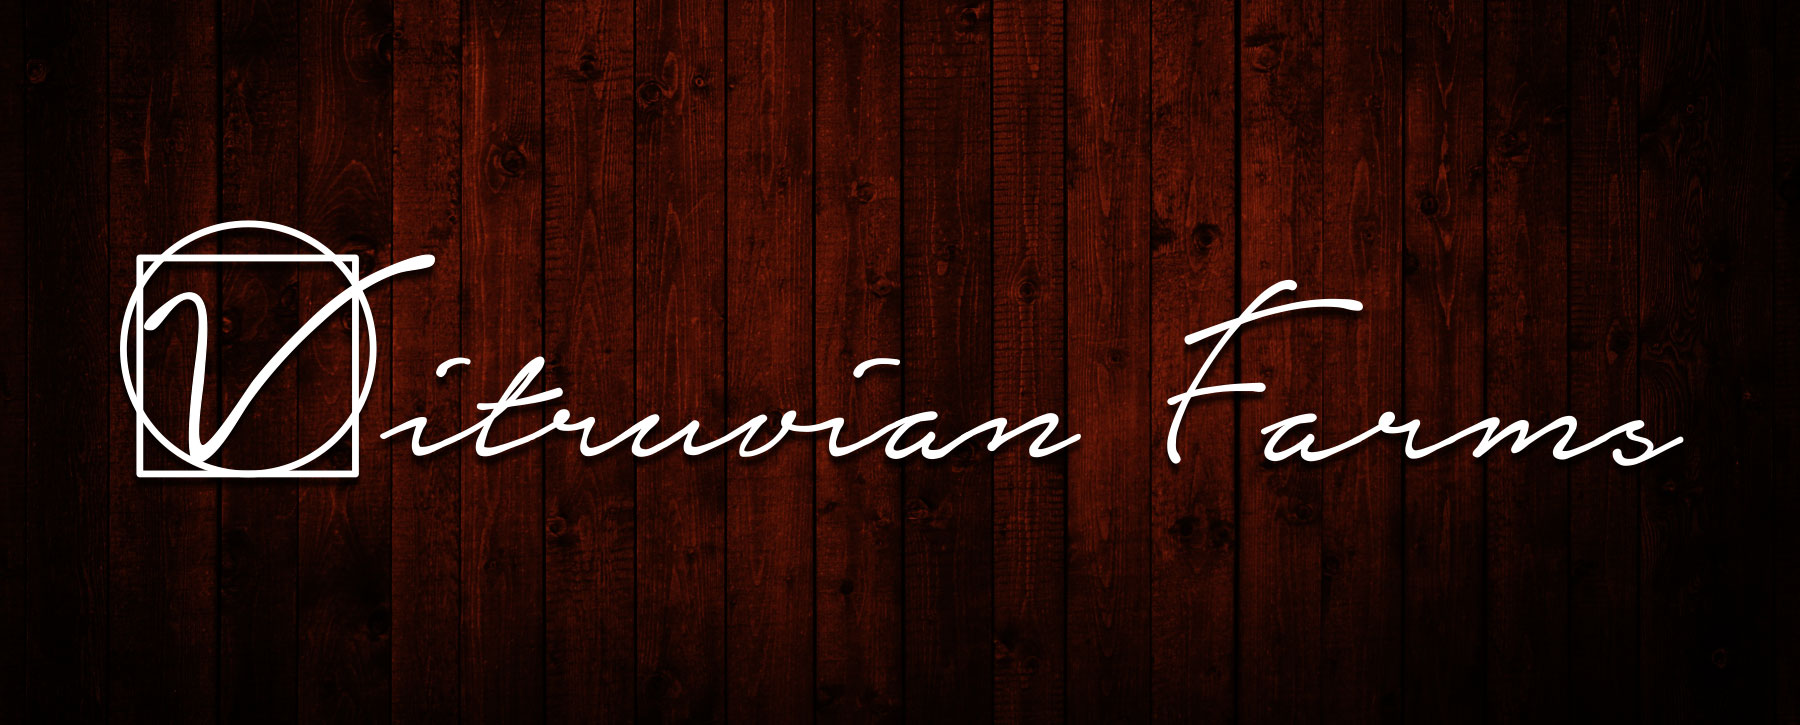 Vitruvian-Farms-The-Logo (1).jpg